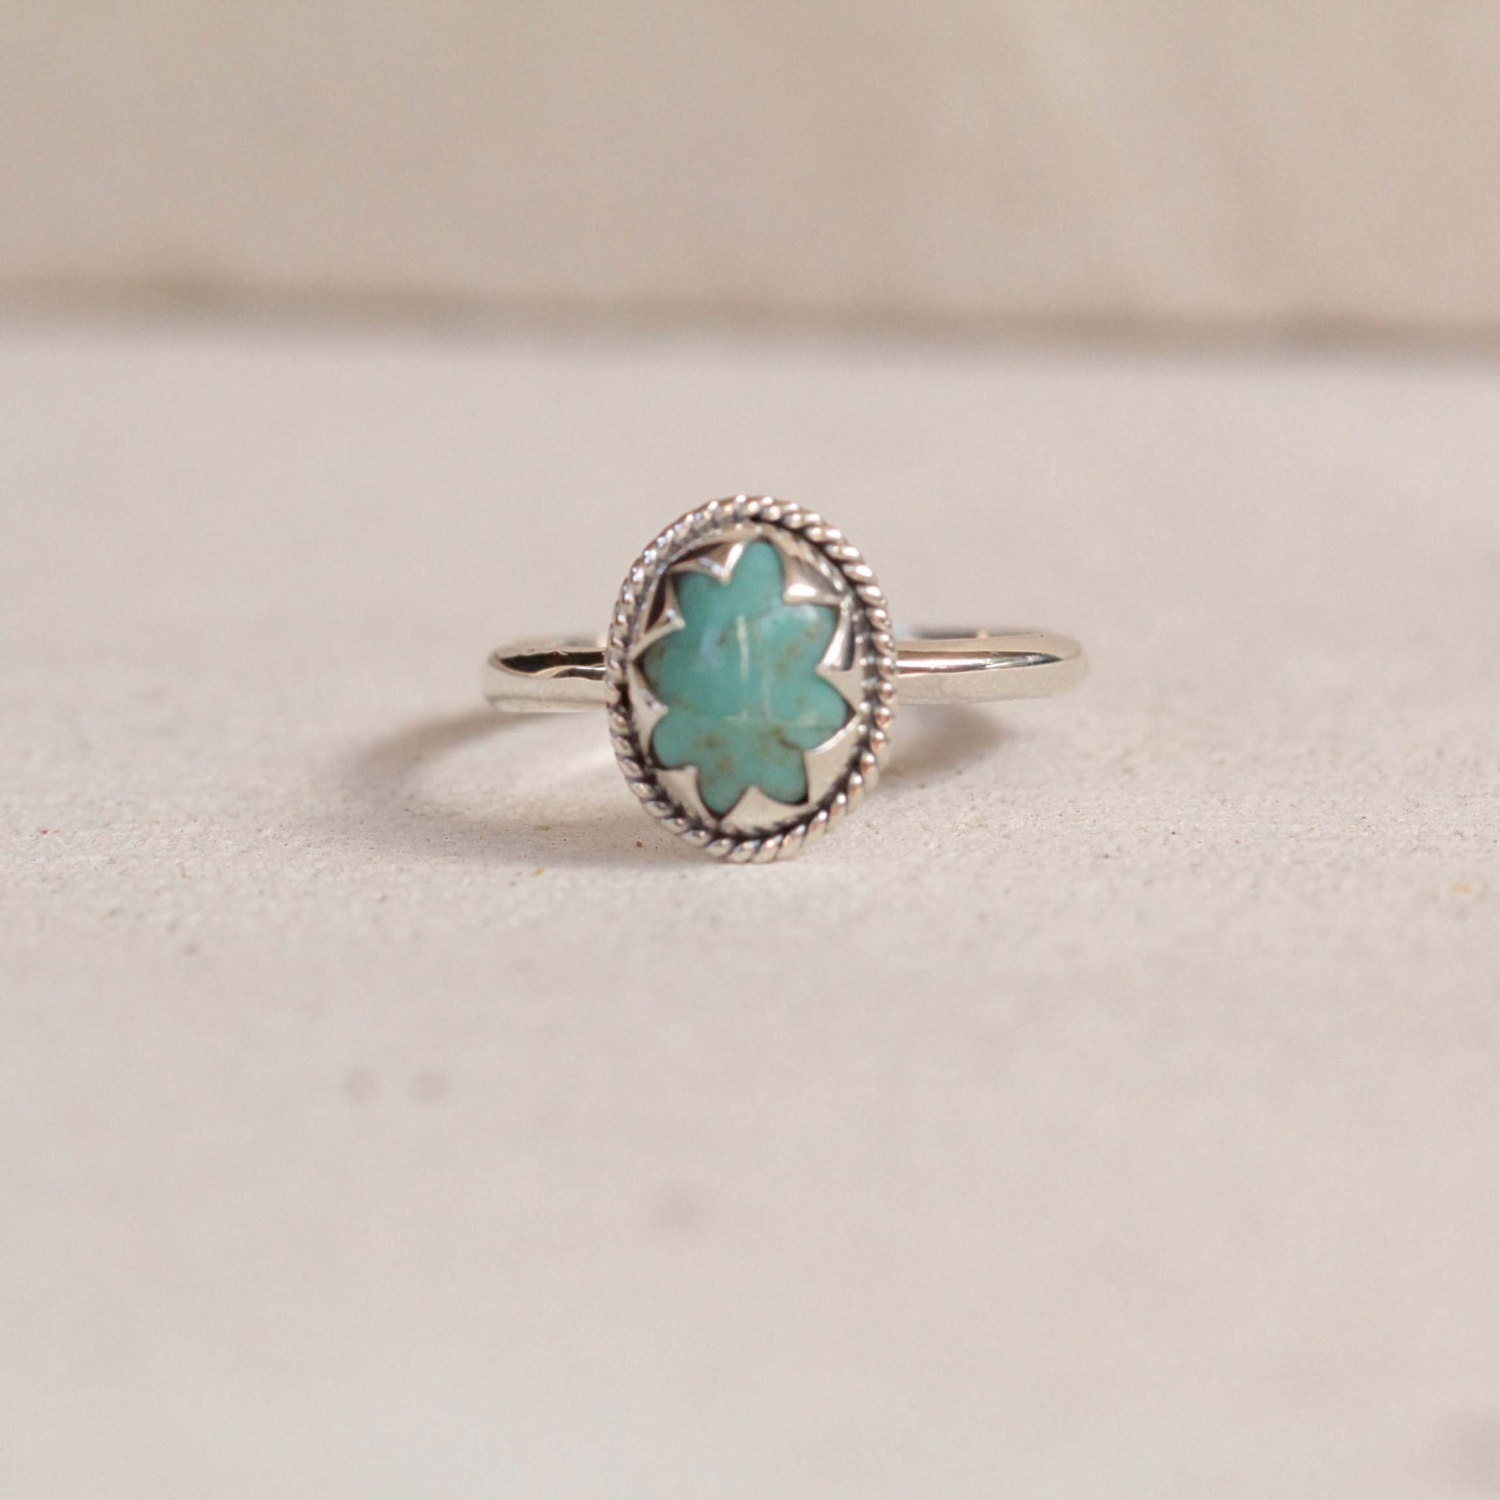 com vintage women rings from stone sasashop quality turquoise product silver newest jewelry tibetan dhgate ring